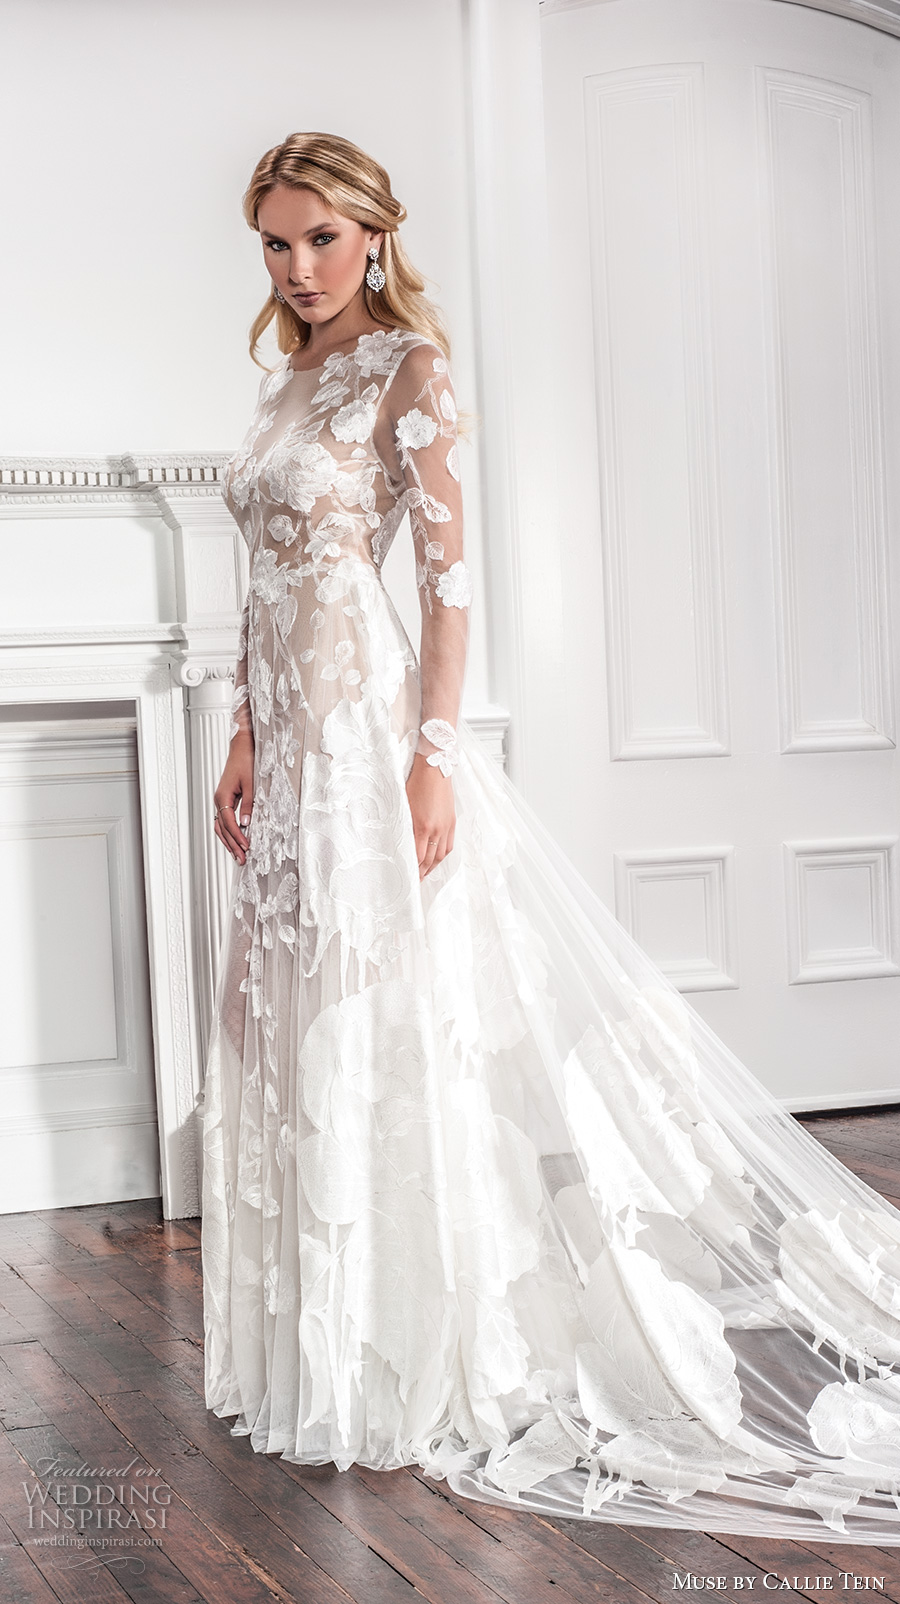 muse by callie tein fall 2017 bridal long sleeves jewel neckline full embroidered floral applique lace elegant sheath wedding dress full illusion lace back chapel train (brielle) mv